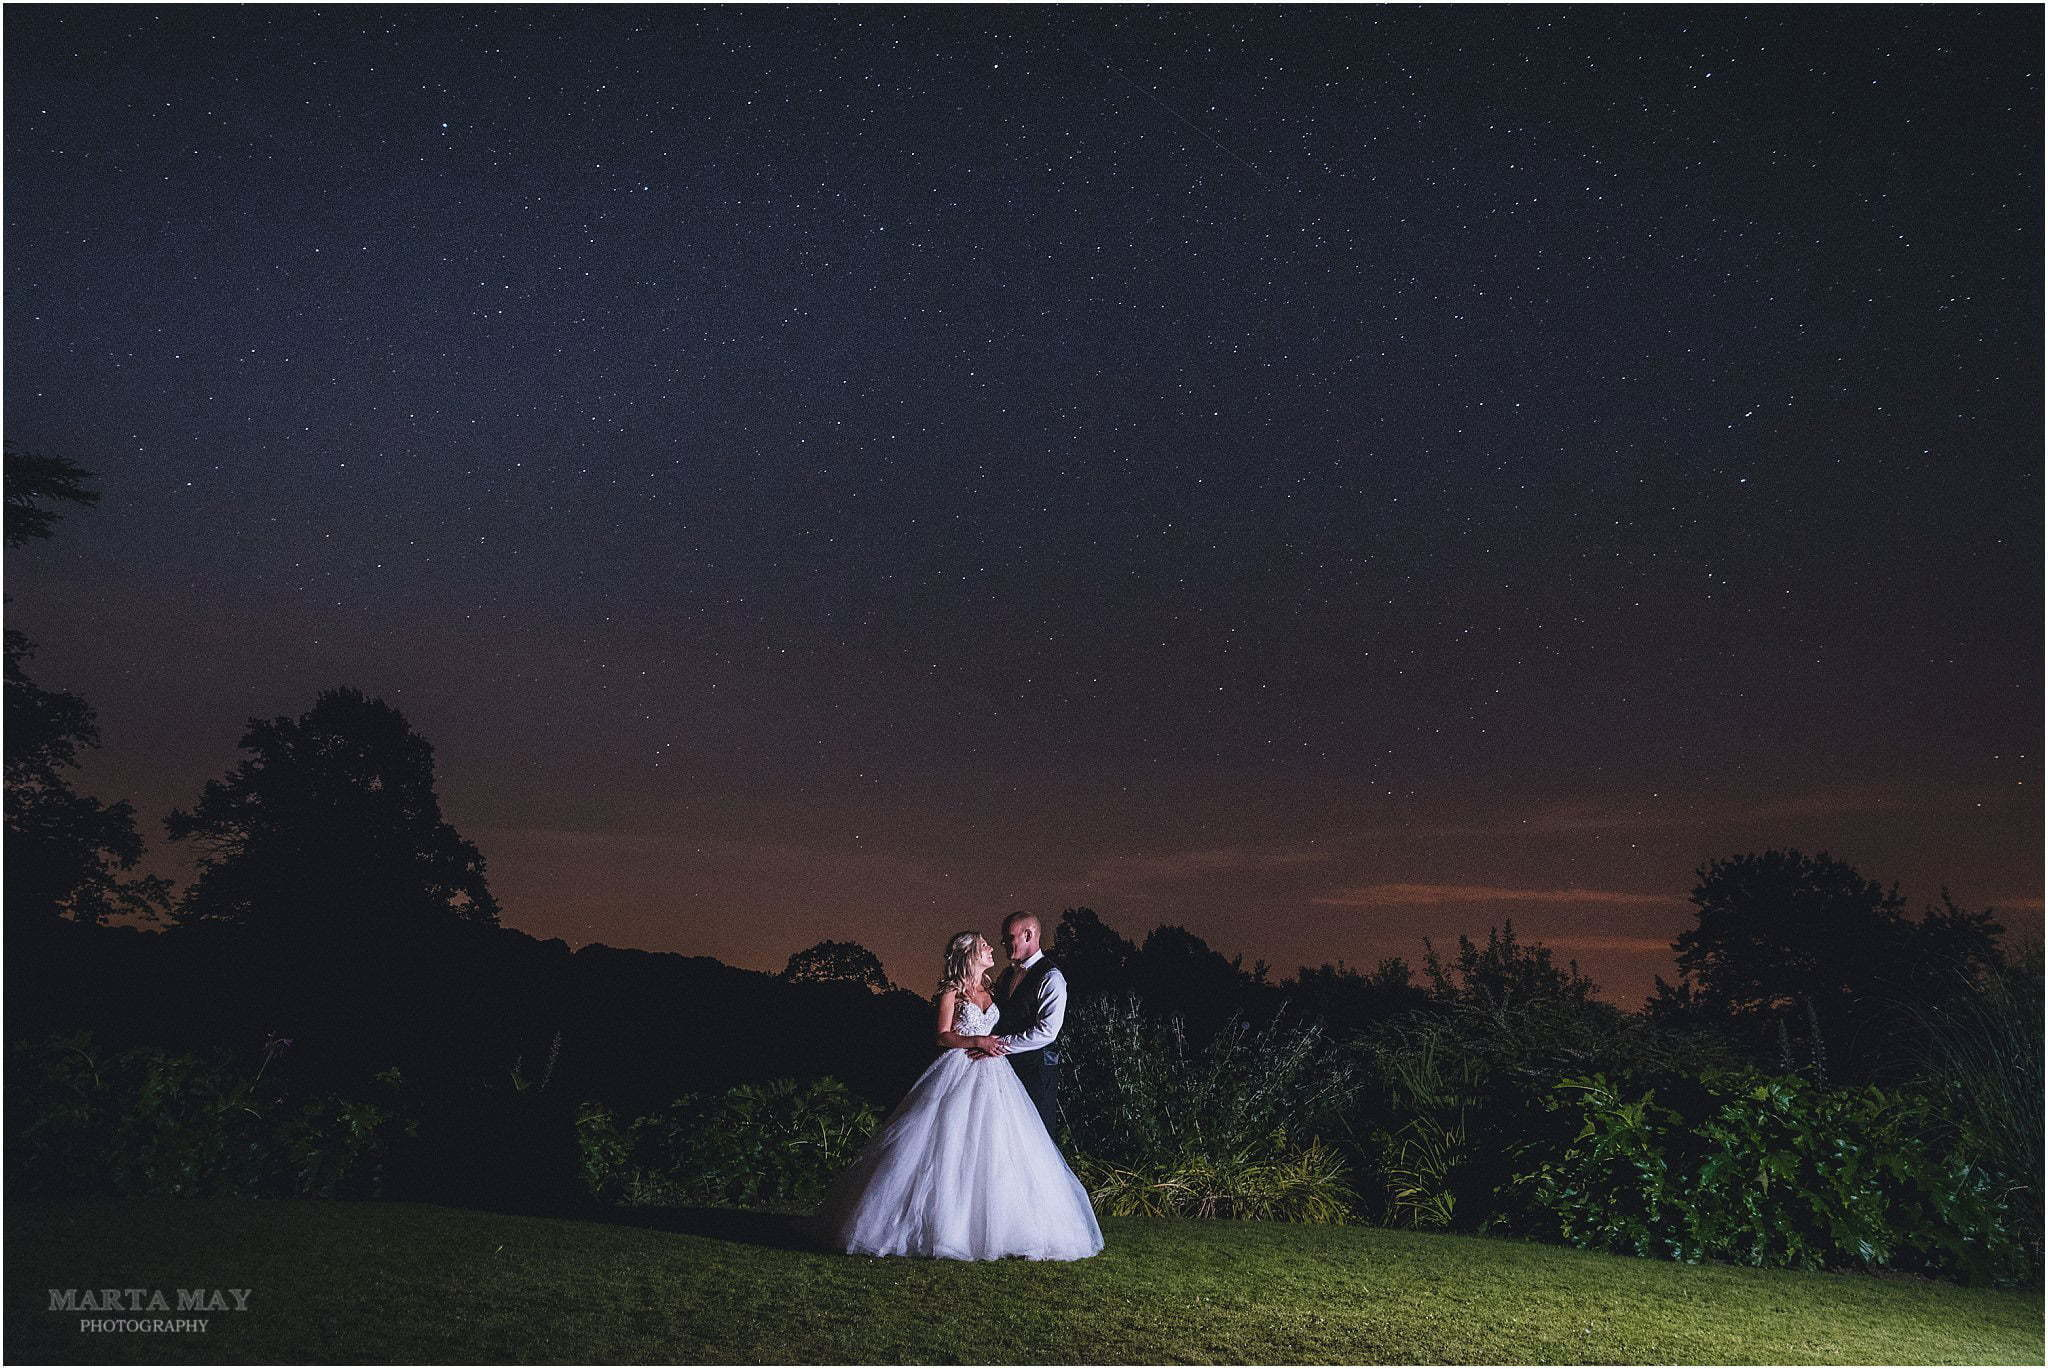 astro photography at weddings